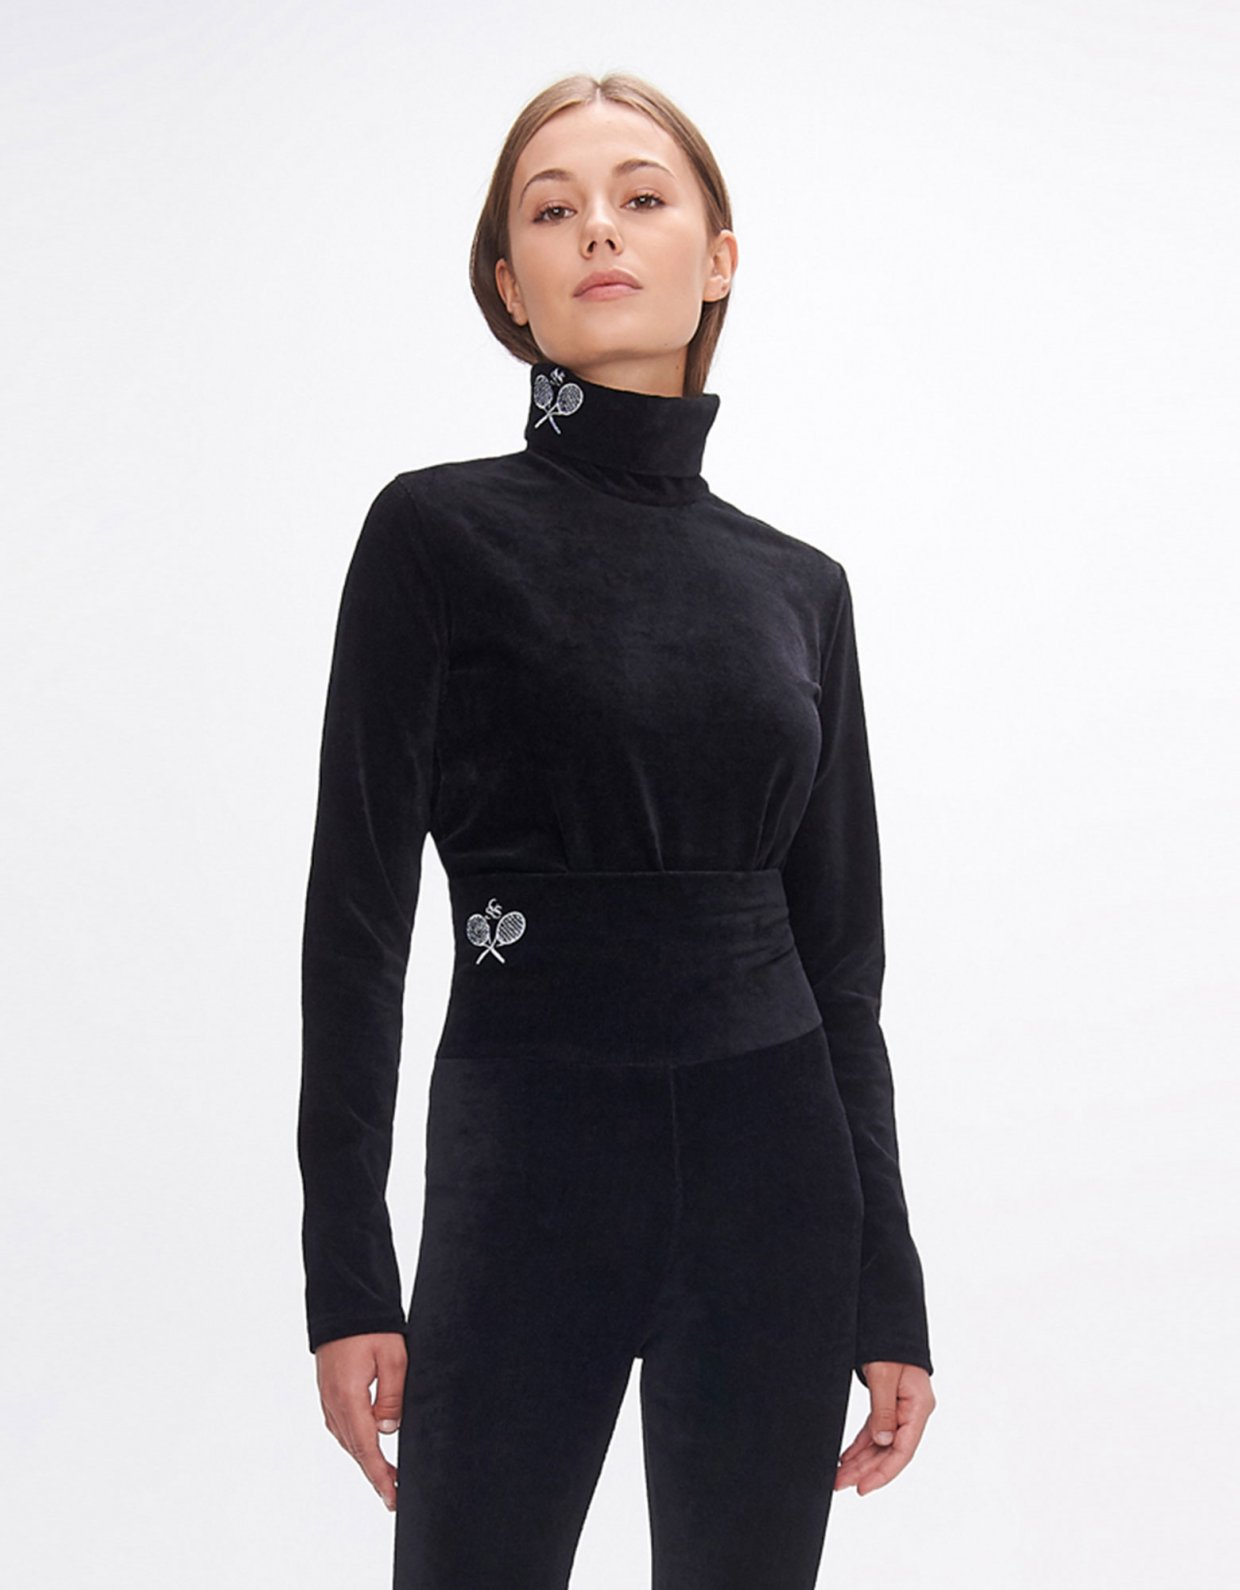 Sunset go Dona black turtleneck top